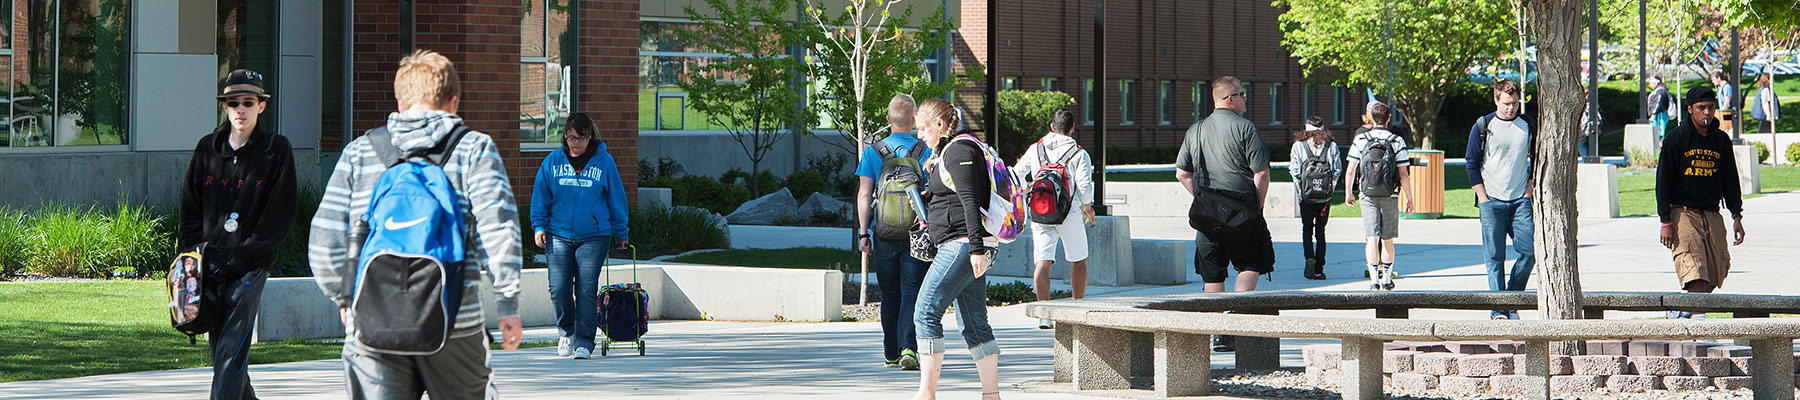 Students walks across the sunny campus